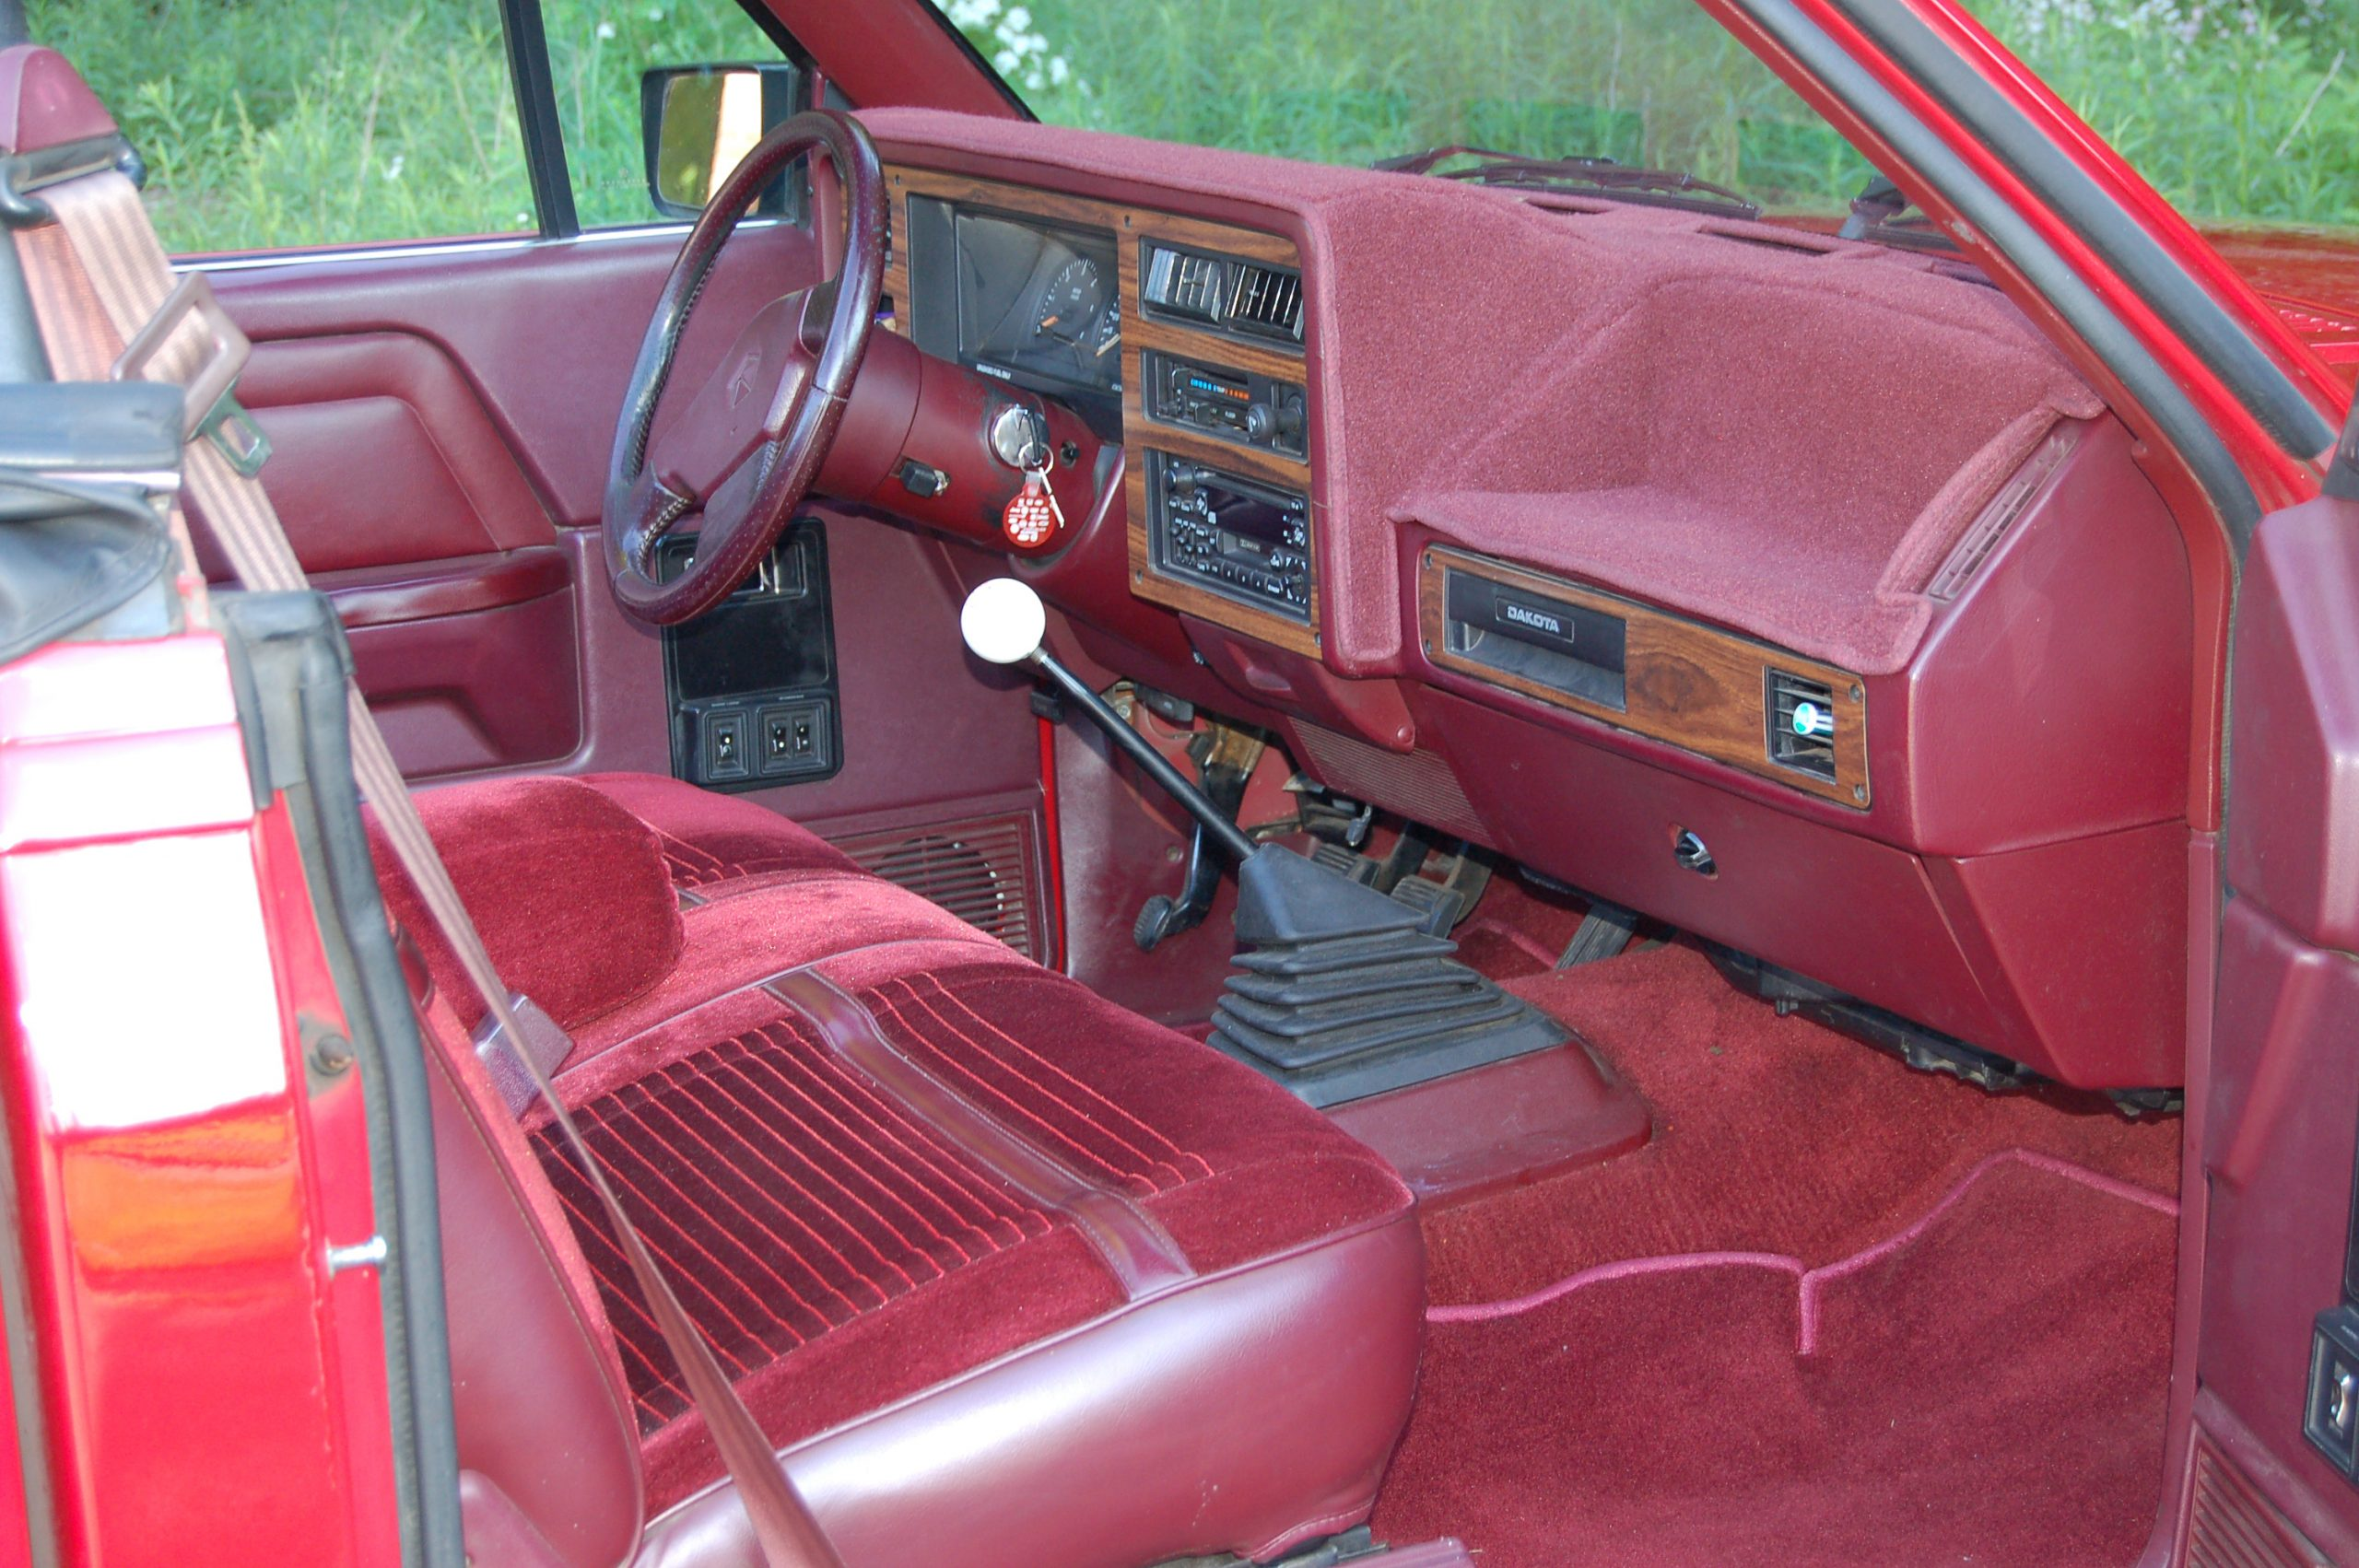 1989 Dodge Dakota Sport Convertible interior passenger's side